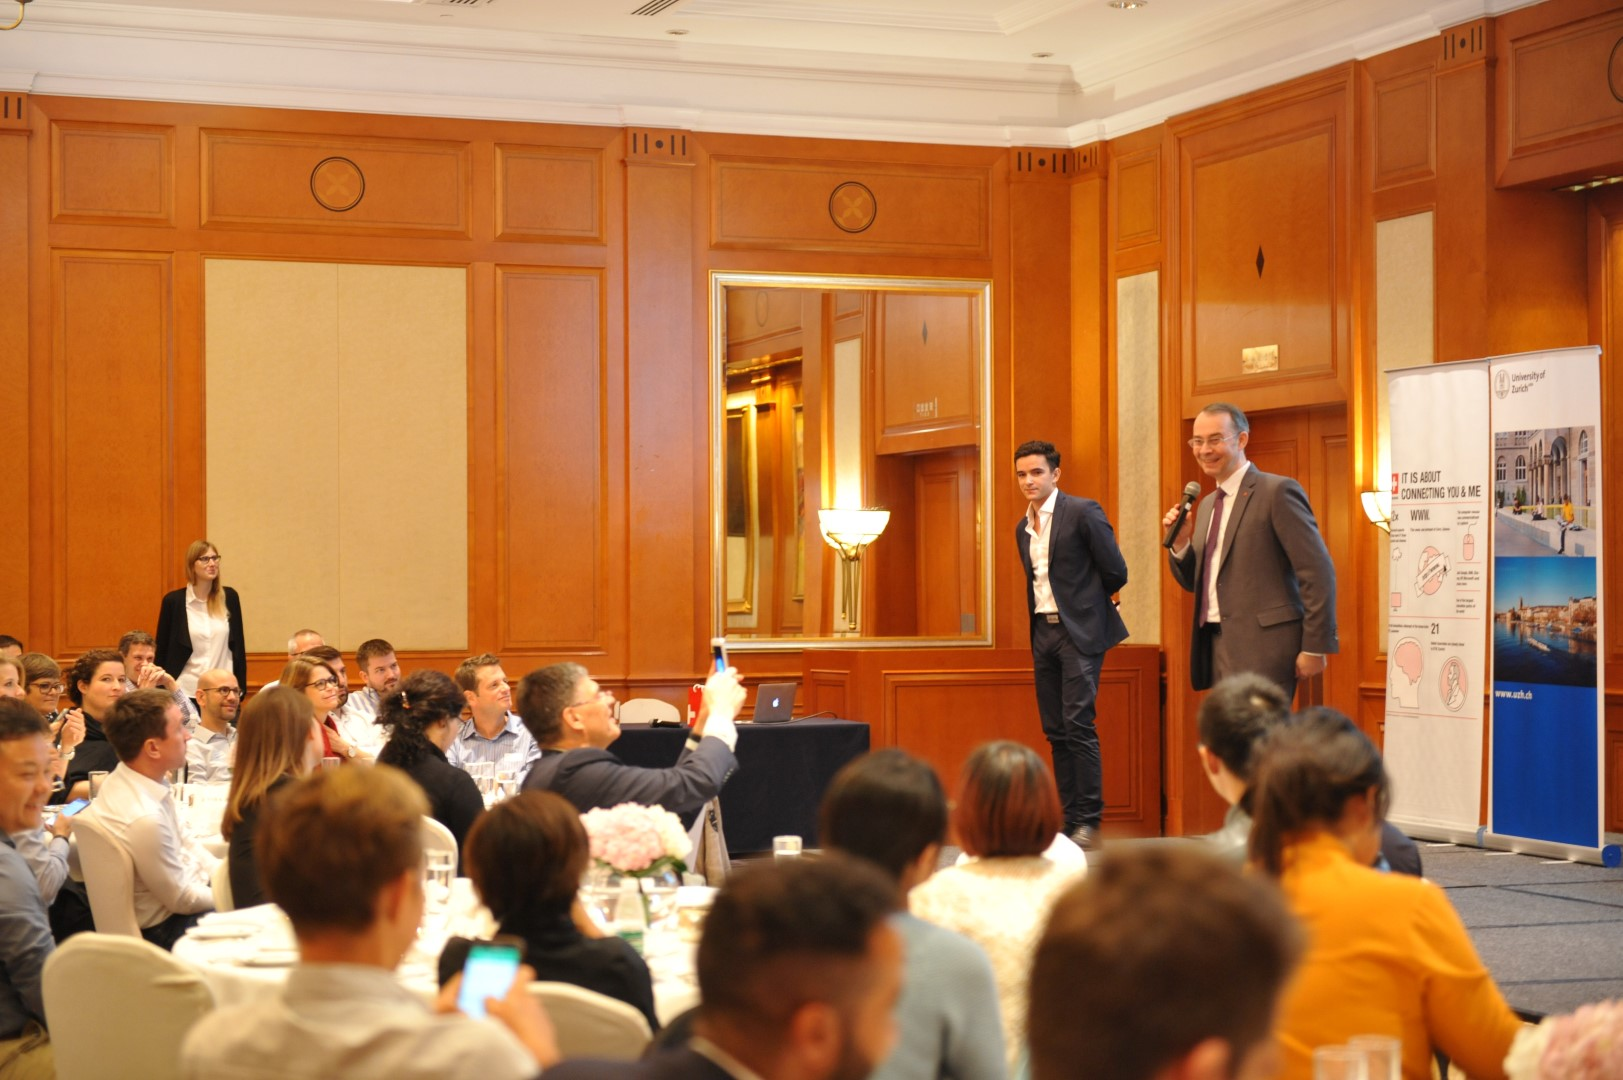 An active audience of 80 people joined the Blcokchain luncheon